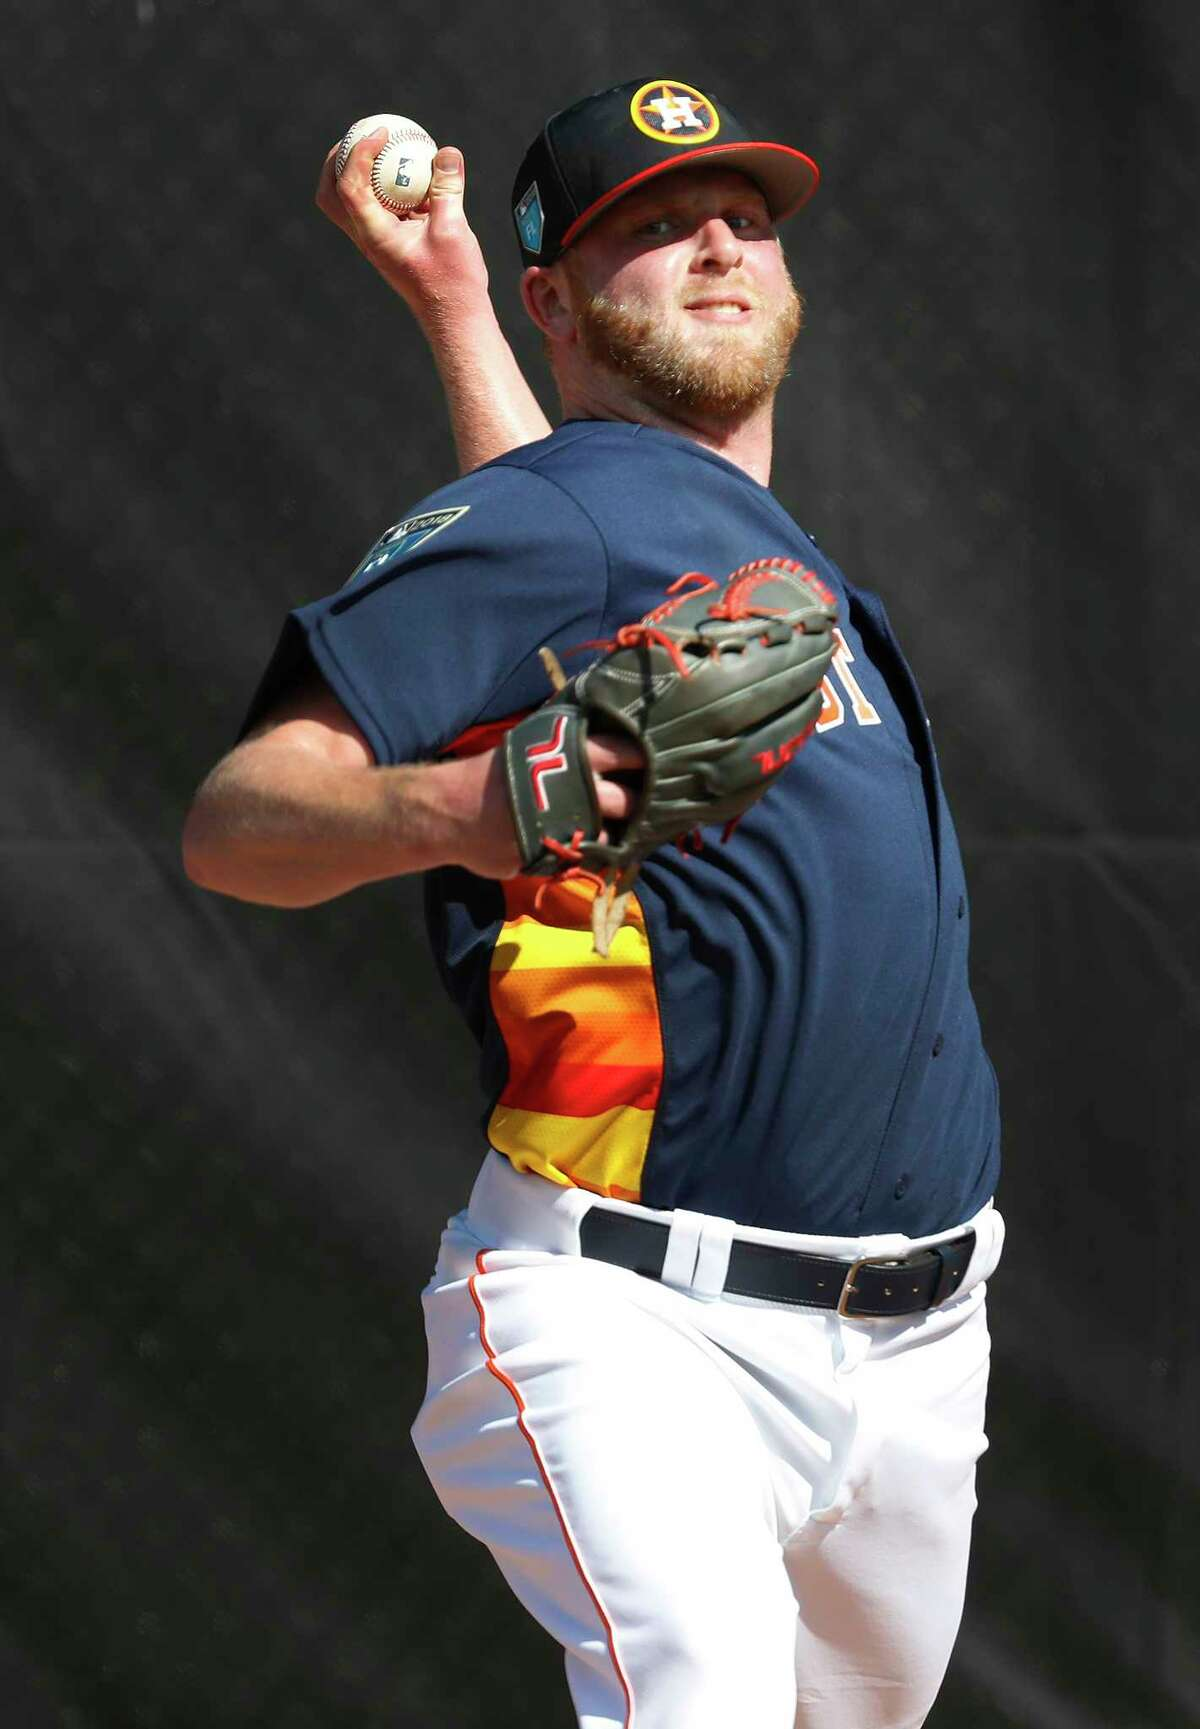 Houston Astros LHP pitcher Buddy Boshers (52) throws a bullpen session as the pitchers and catchers worked out during spring training at The Ballpark of the Palm Beaches, Thursday, Feb. 15, 2018, in West Palm Beach.